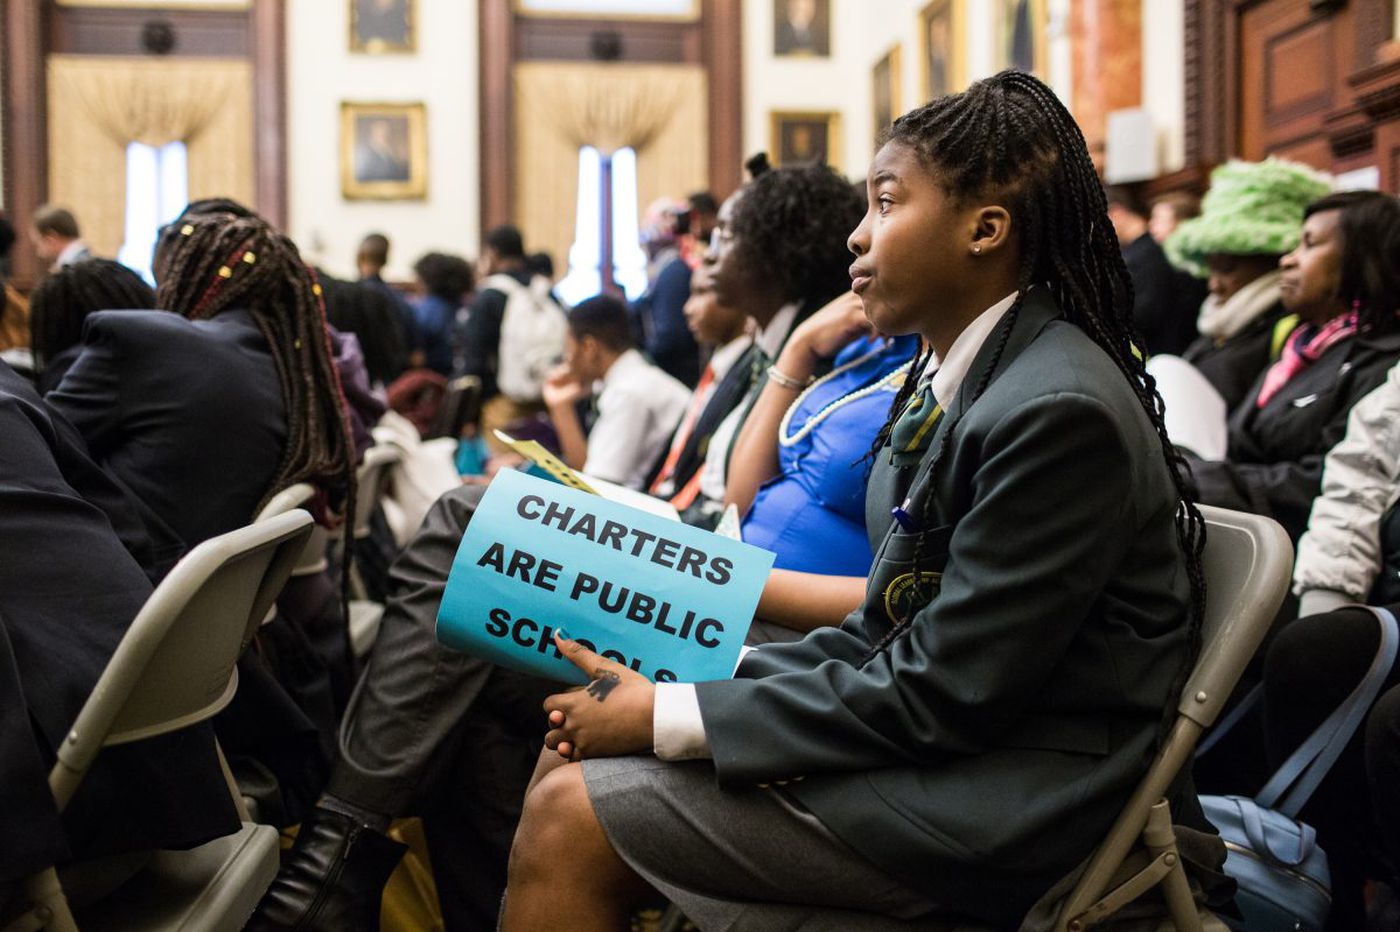 Amid a standoff with Philly schools, hundreds rally for charters